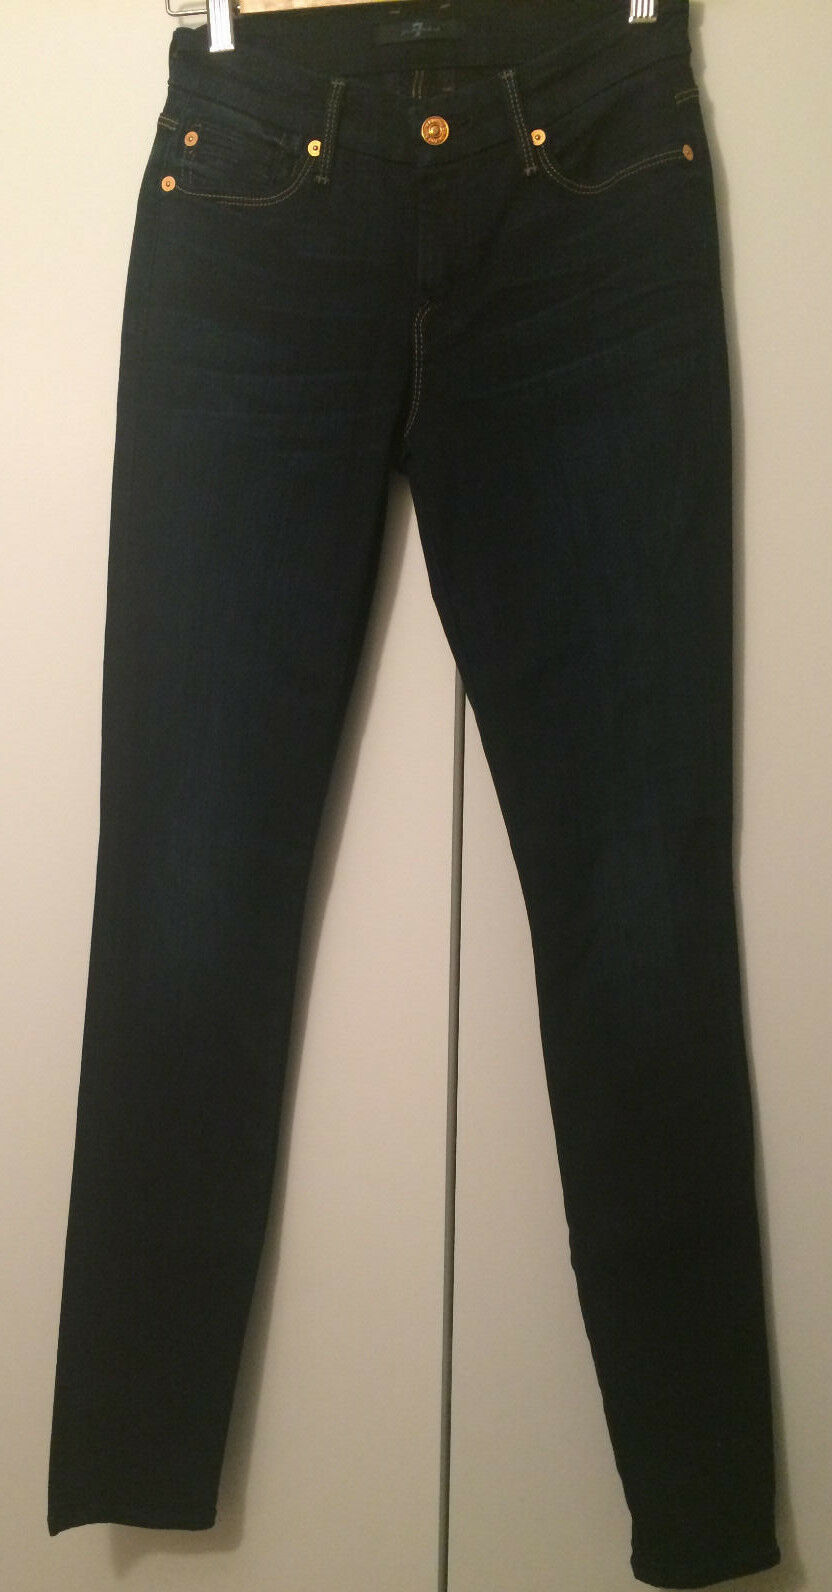 Brand New 7 For All Mankind Dark Wash Skinny Jeans Size 24